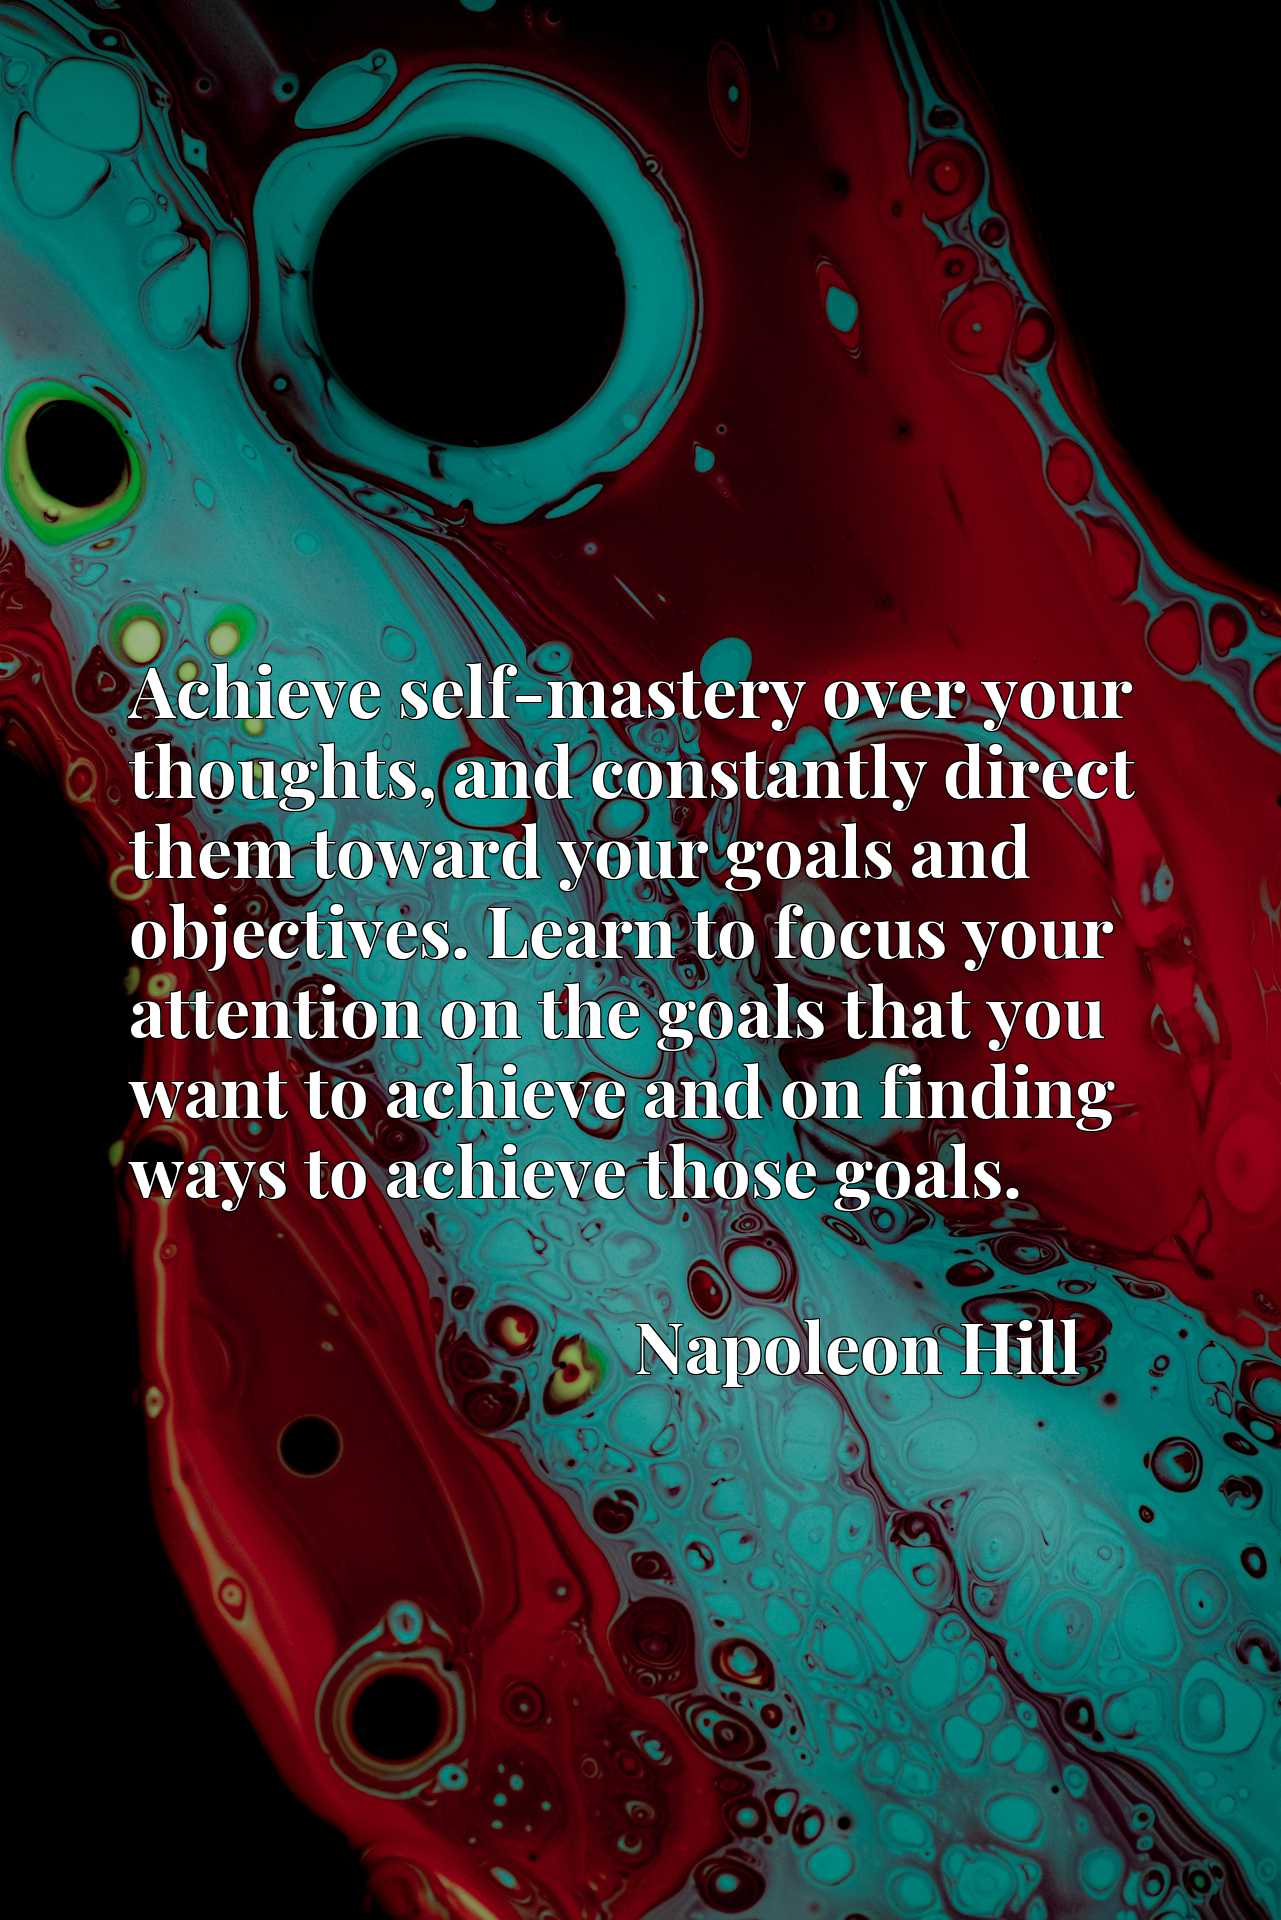 Achieve self-mastery over your thoughts, and constantly direct them toward your goals and objectives. Learn to focus your attention on the goals that you want to achieve and on finding ways to achieve those goals.